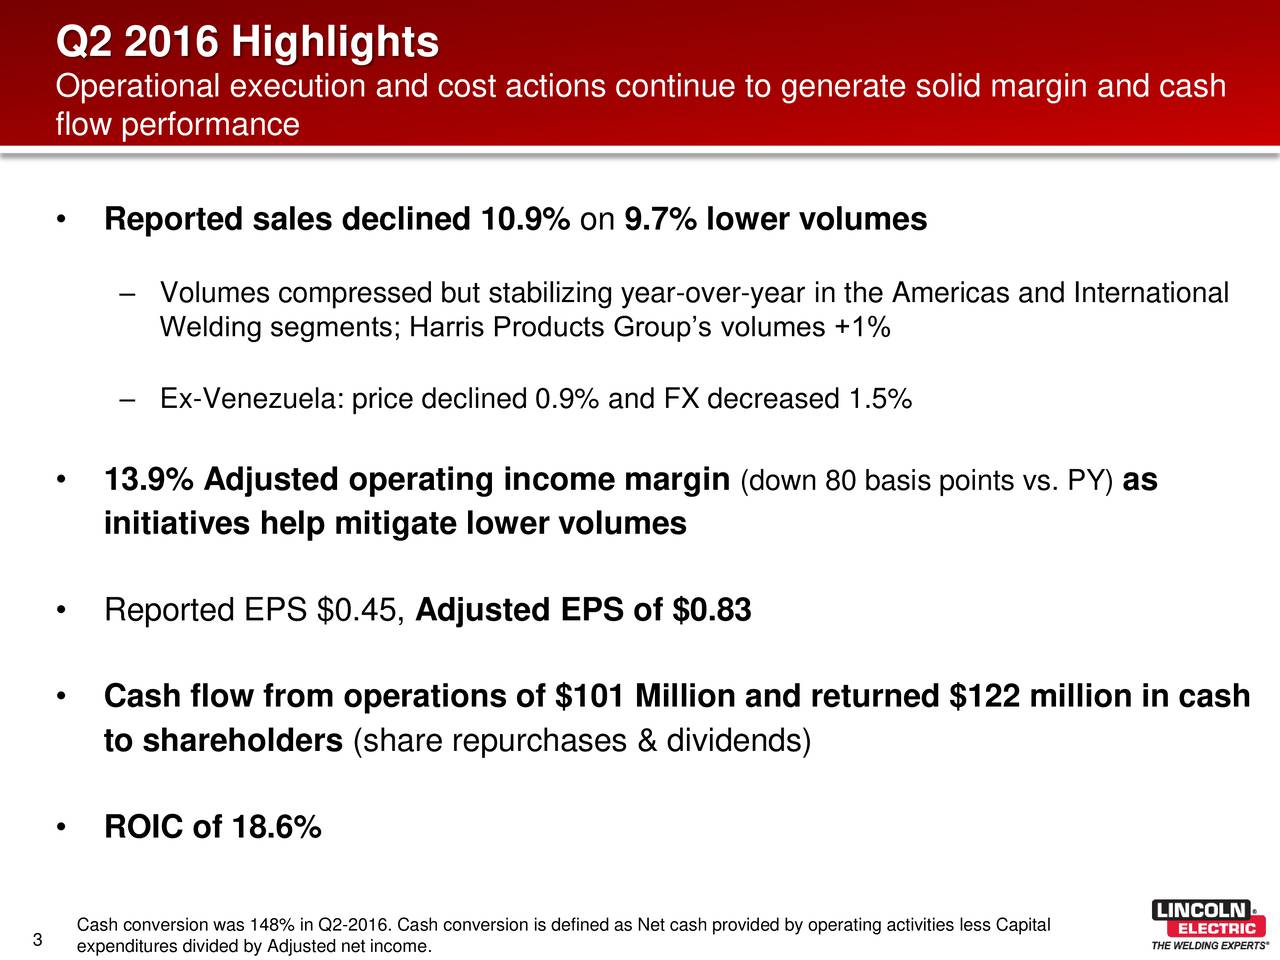 Operational execution and cost actions continue to generate solid margin and cash flow performance Reported sales declined 10.9% on 9.7% lower volumes Volumes compressed but stabilizing year-over-year in the Americas and International Welding segments; Harris Products Groups volumes +1% Ex-Venezuela: price declined 0.9% and FX decreased 1.5% 13.9% Adjusted operating income margin (down 80 basis points vs. PY)as initiatives help mitigate lower volumes Reported EPS $0.45, Adjusted EPS of $0.83 Cash flow from operations of $101 Million and returned $122 million in cash to shareholders (share repurchases & dividends) ROIC of 18.6% Cash conversion was 148% in Q2-2016. Cash conversion is defined as Net cash provided by operating activities less Capital